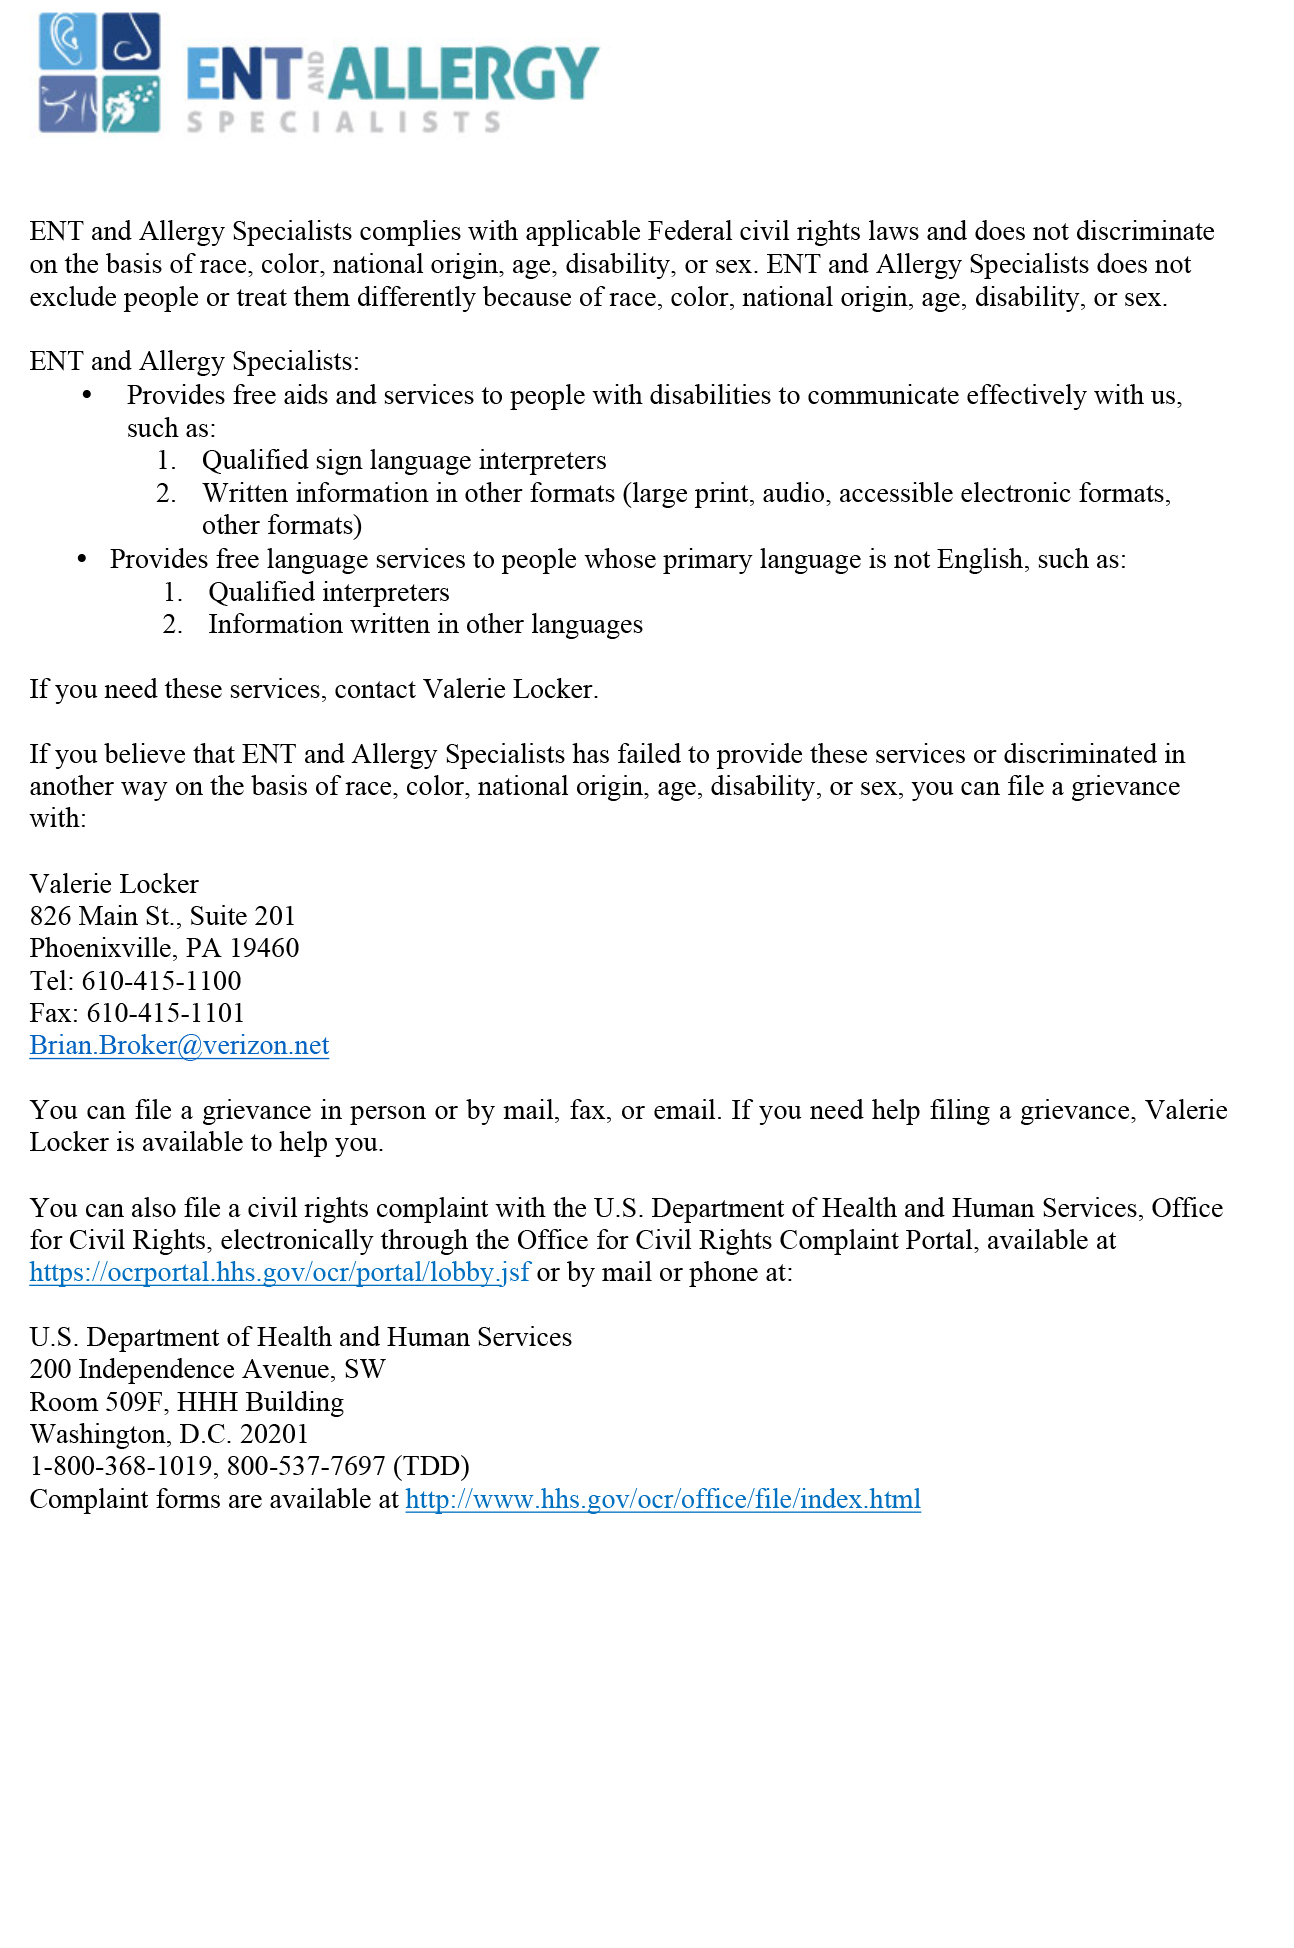 Microsoft Word - ENT Non-discrimination english.docx